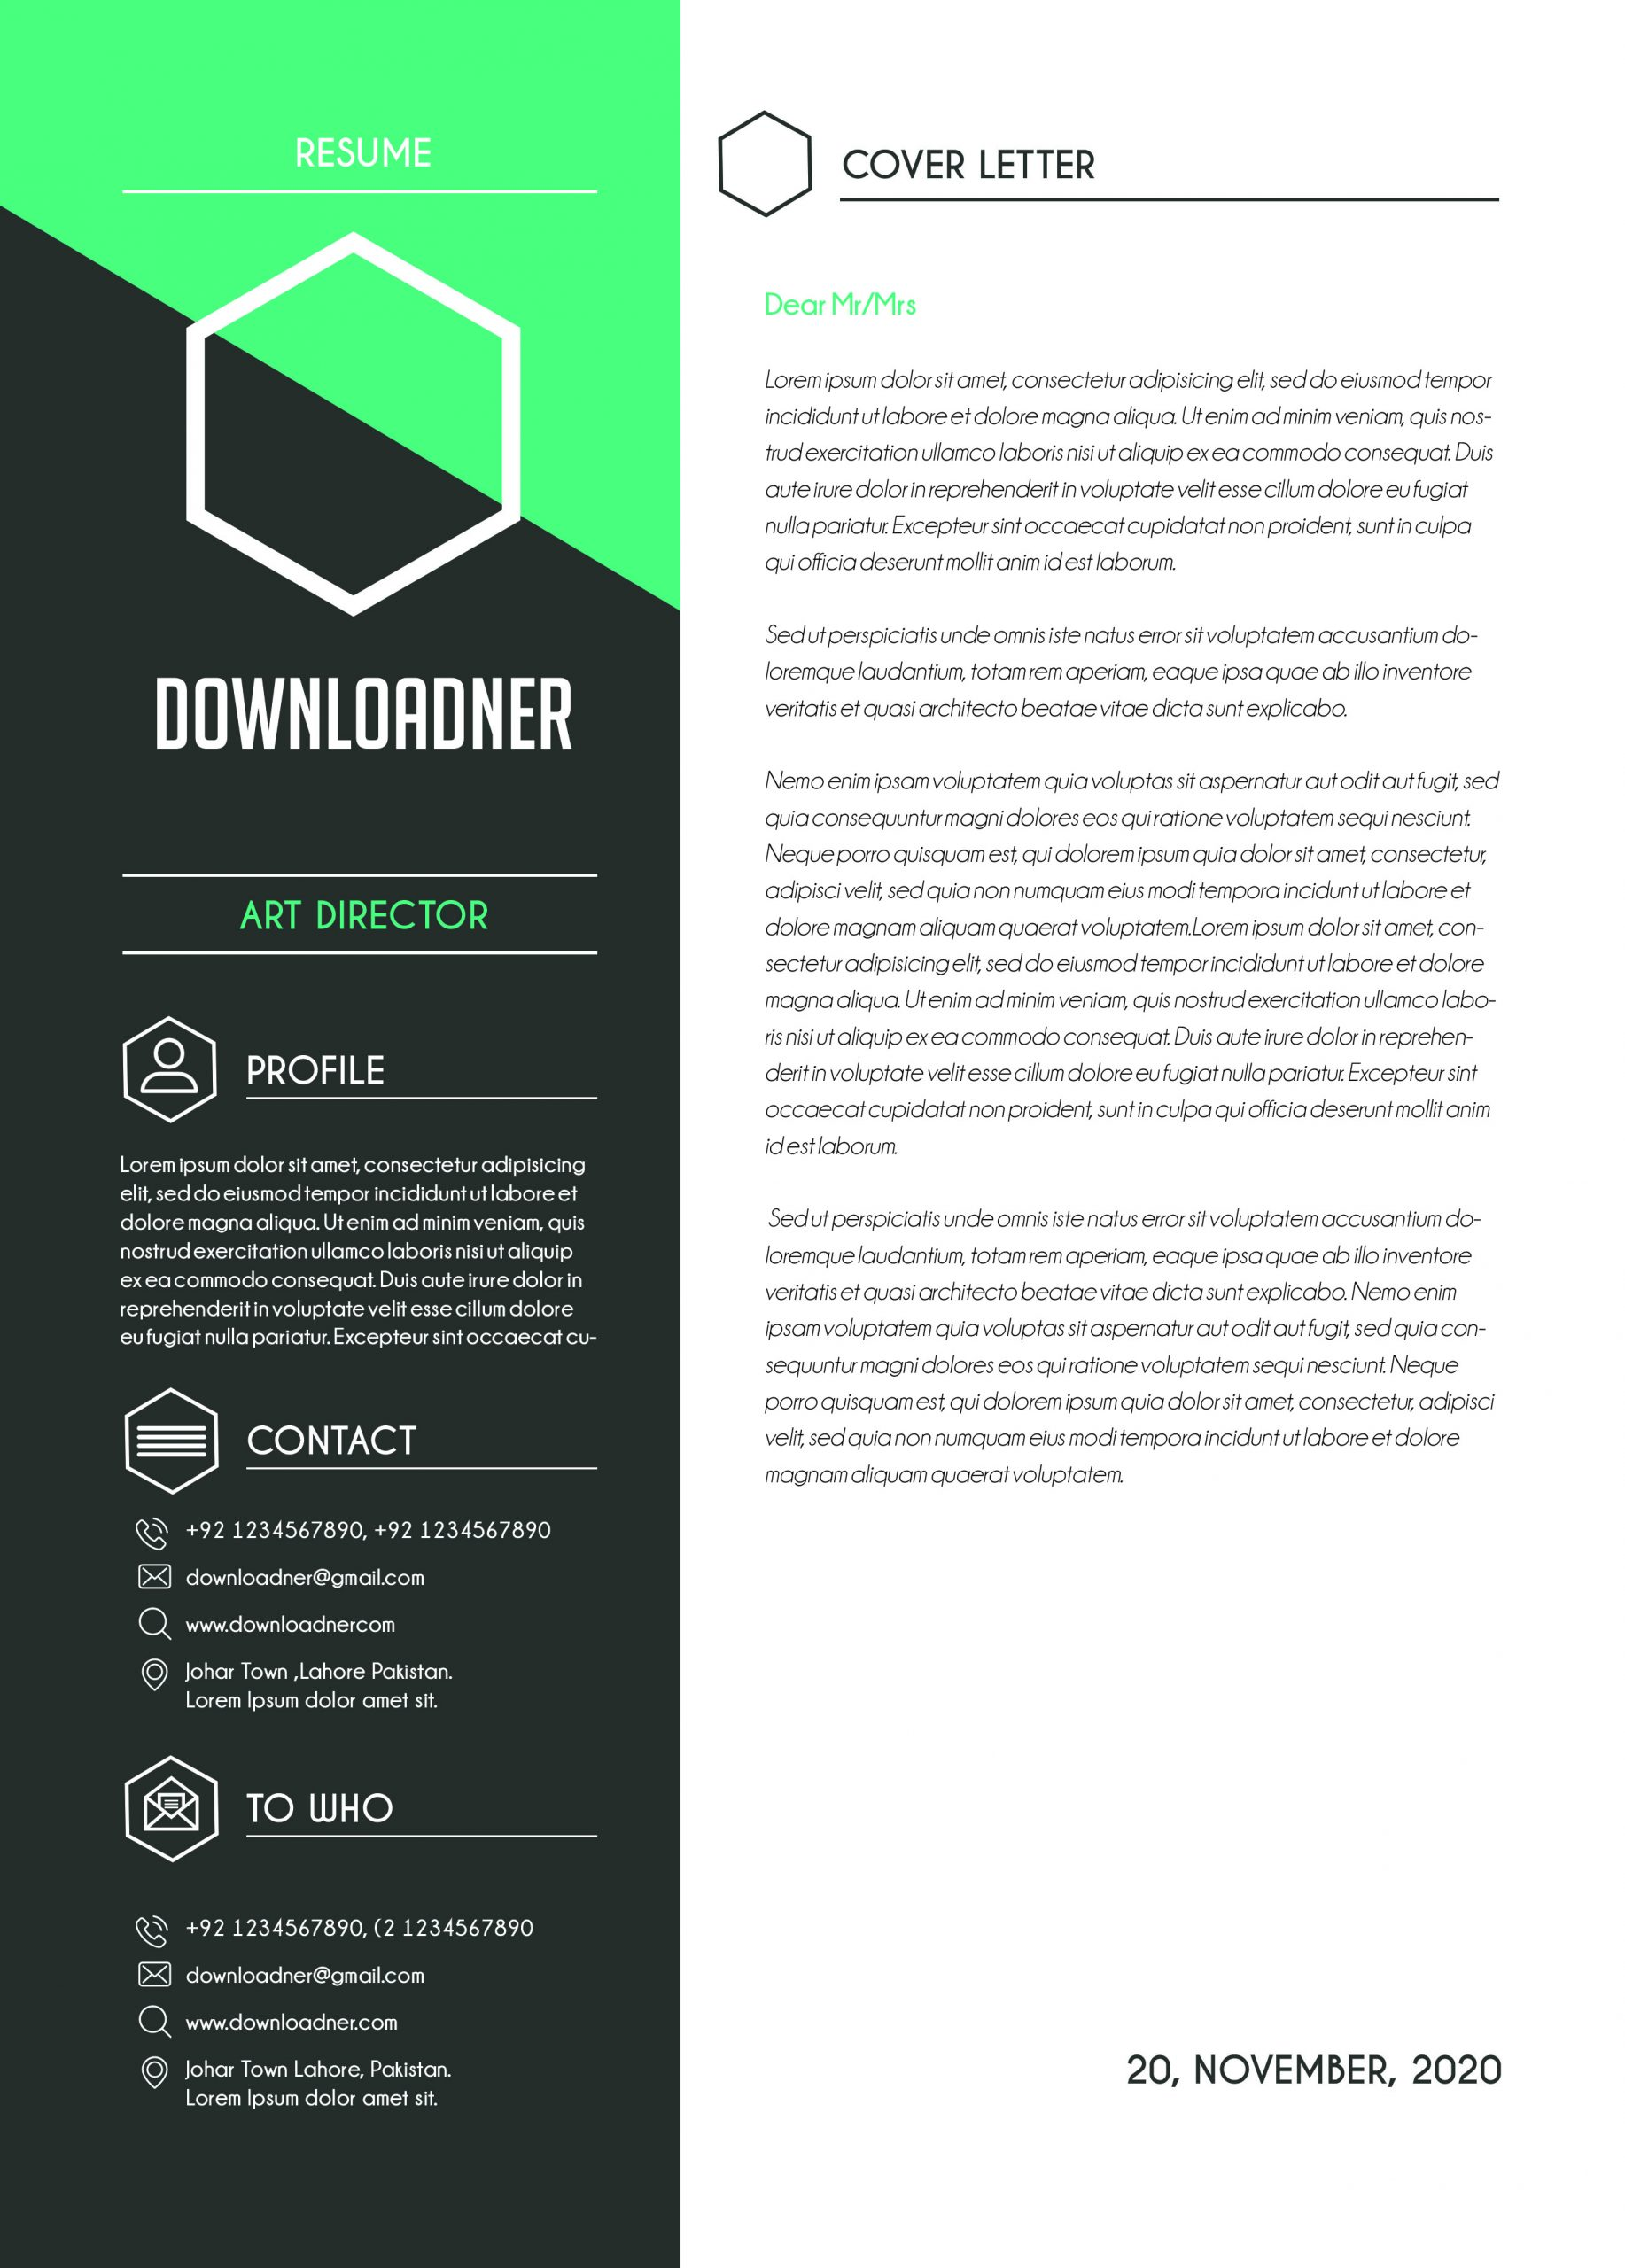 Black and White Cover Letter Template